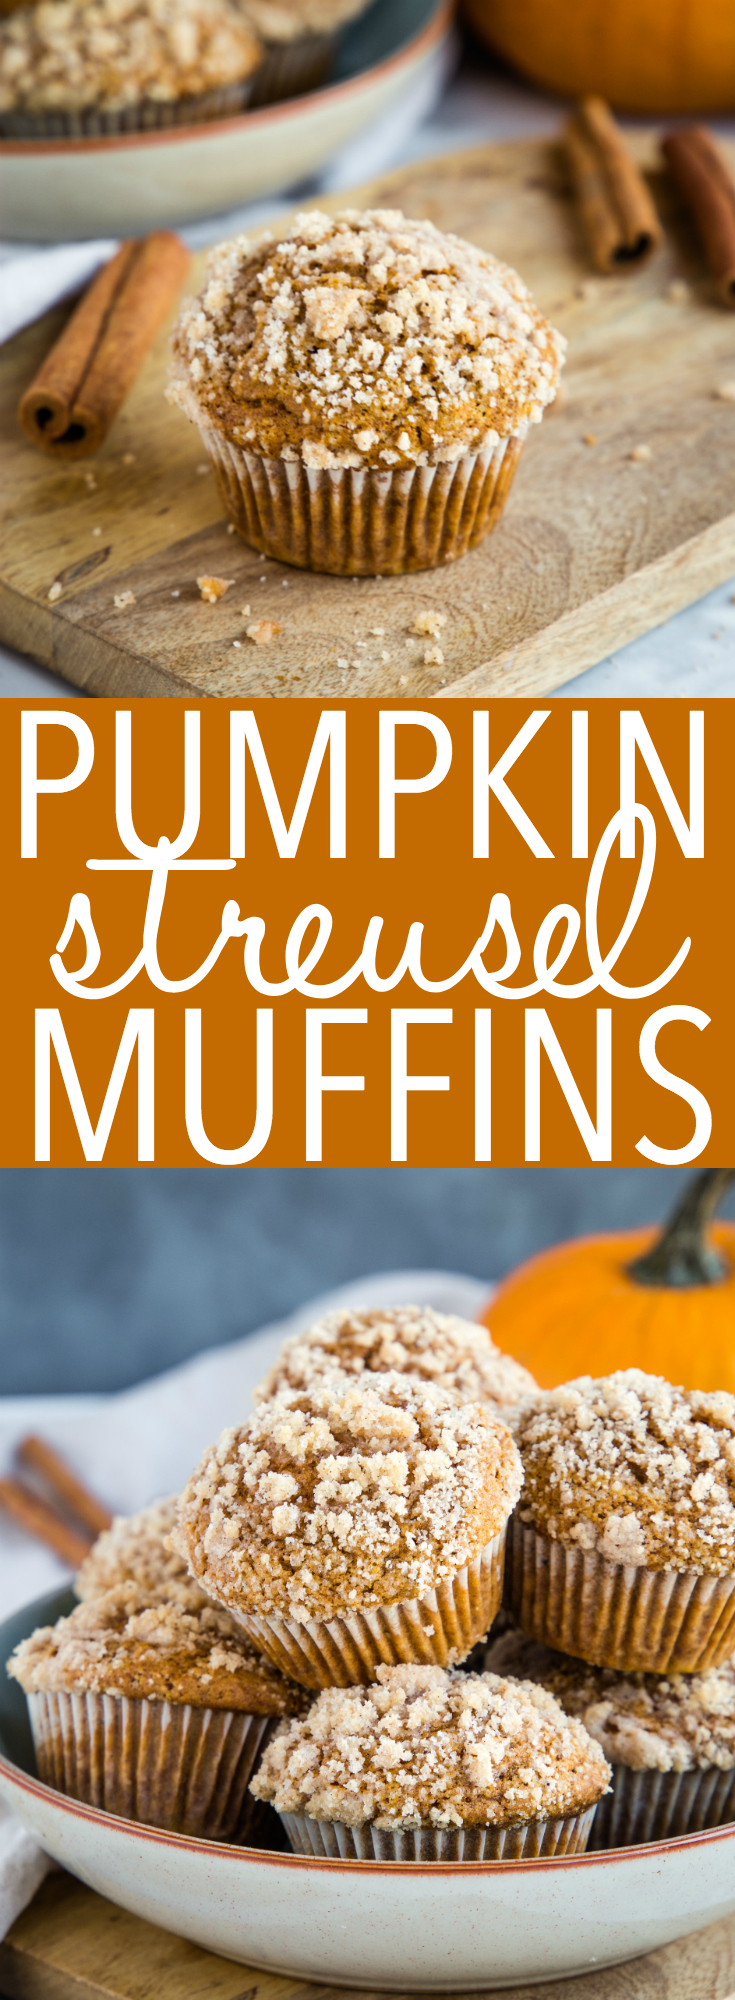 These Pumpkin Spice Streusel Muffins are the perfect fall treat or snack! They're bursting with pumpkin spice flavours and they're so easy to make! Recipe from thebusybaker.ca! #pumpkin #pumpkinspice #fall #autumn #muffins #baking #recipe #foodblog #latte #breakfast #snack #cinnamon #pumpkinpie via @busybakerblog